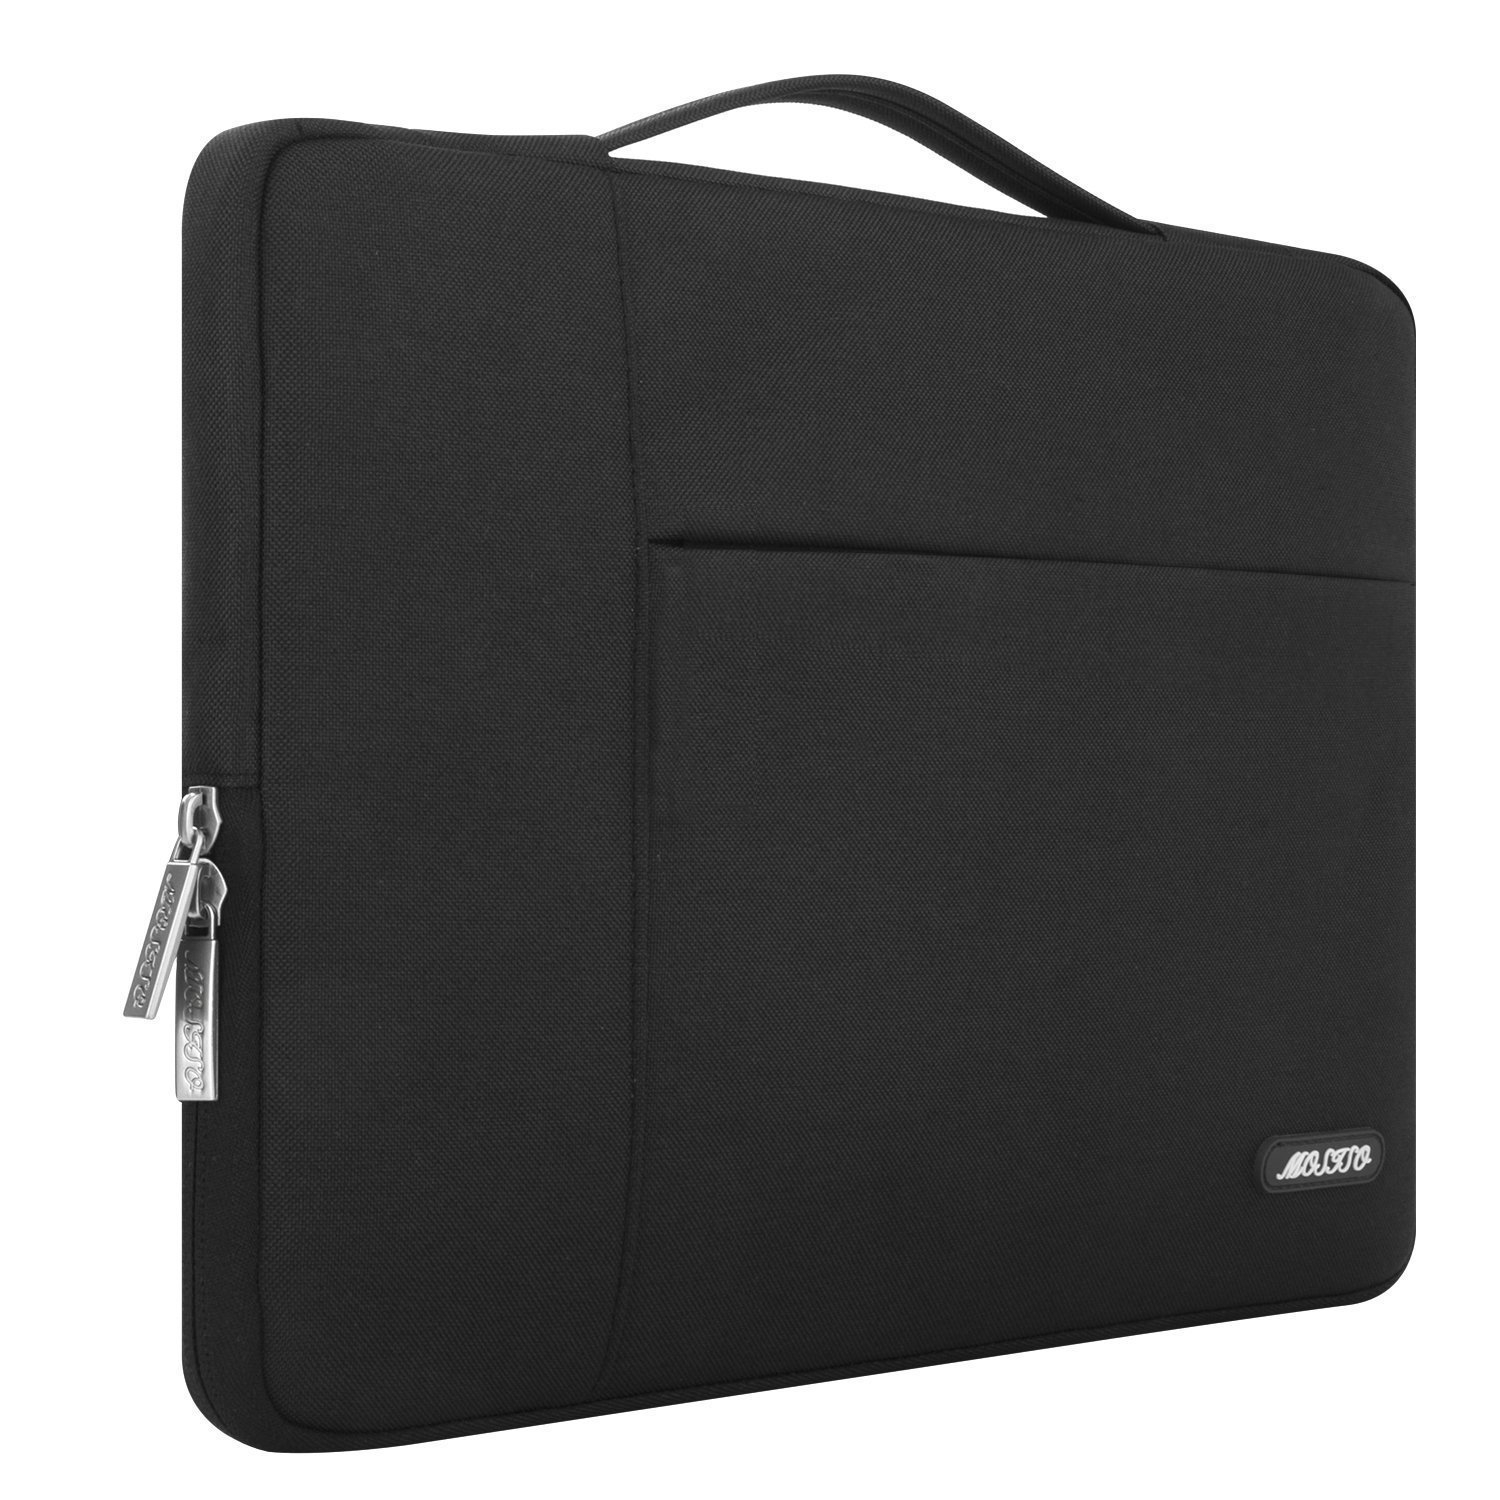 MOSISO Polyester Briefcase Handbag Only Compatible MacBook 12-Inch with Retina Display 2017/2016/2015 Release Fabric Multifunctional Laptop Sleeve Case Cover, Black